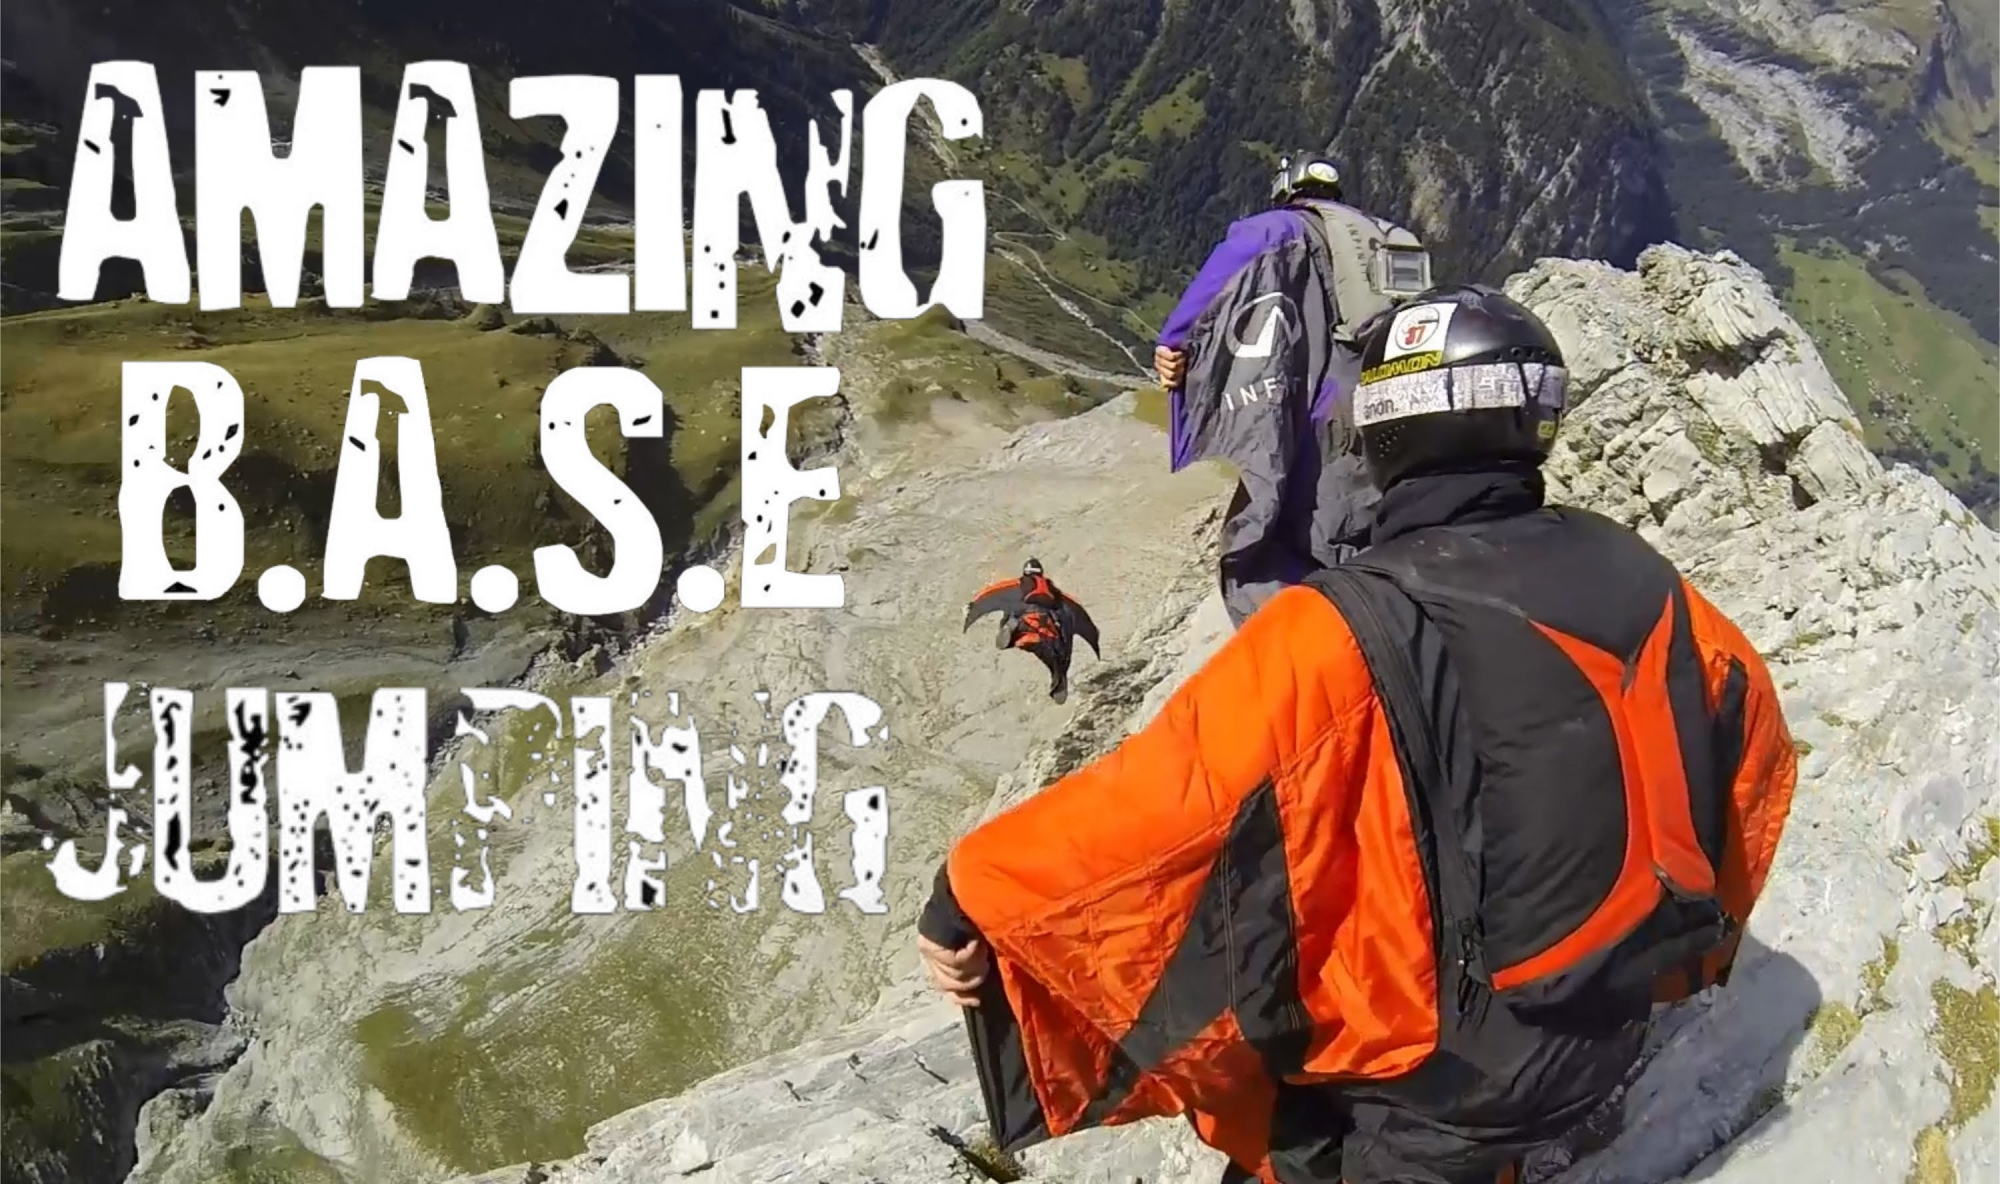 Amazing B.A.S.E. Jumping